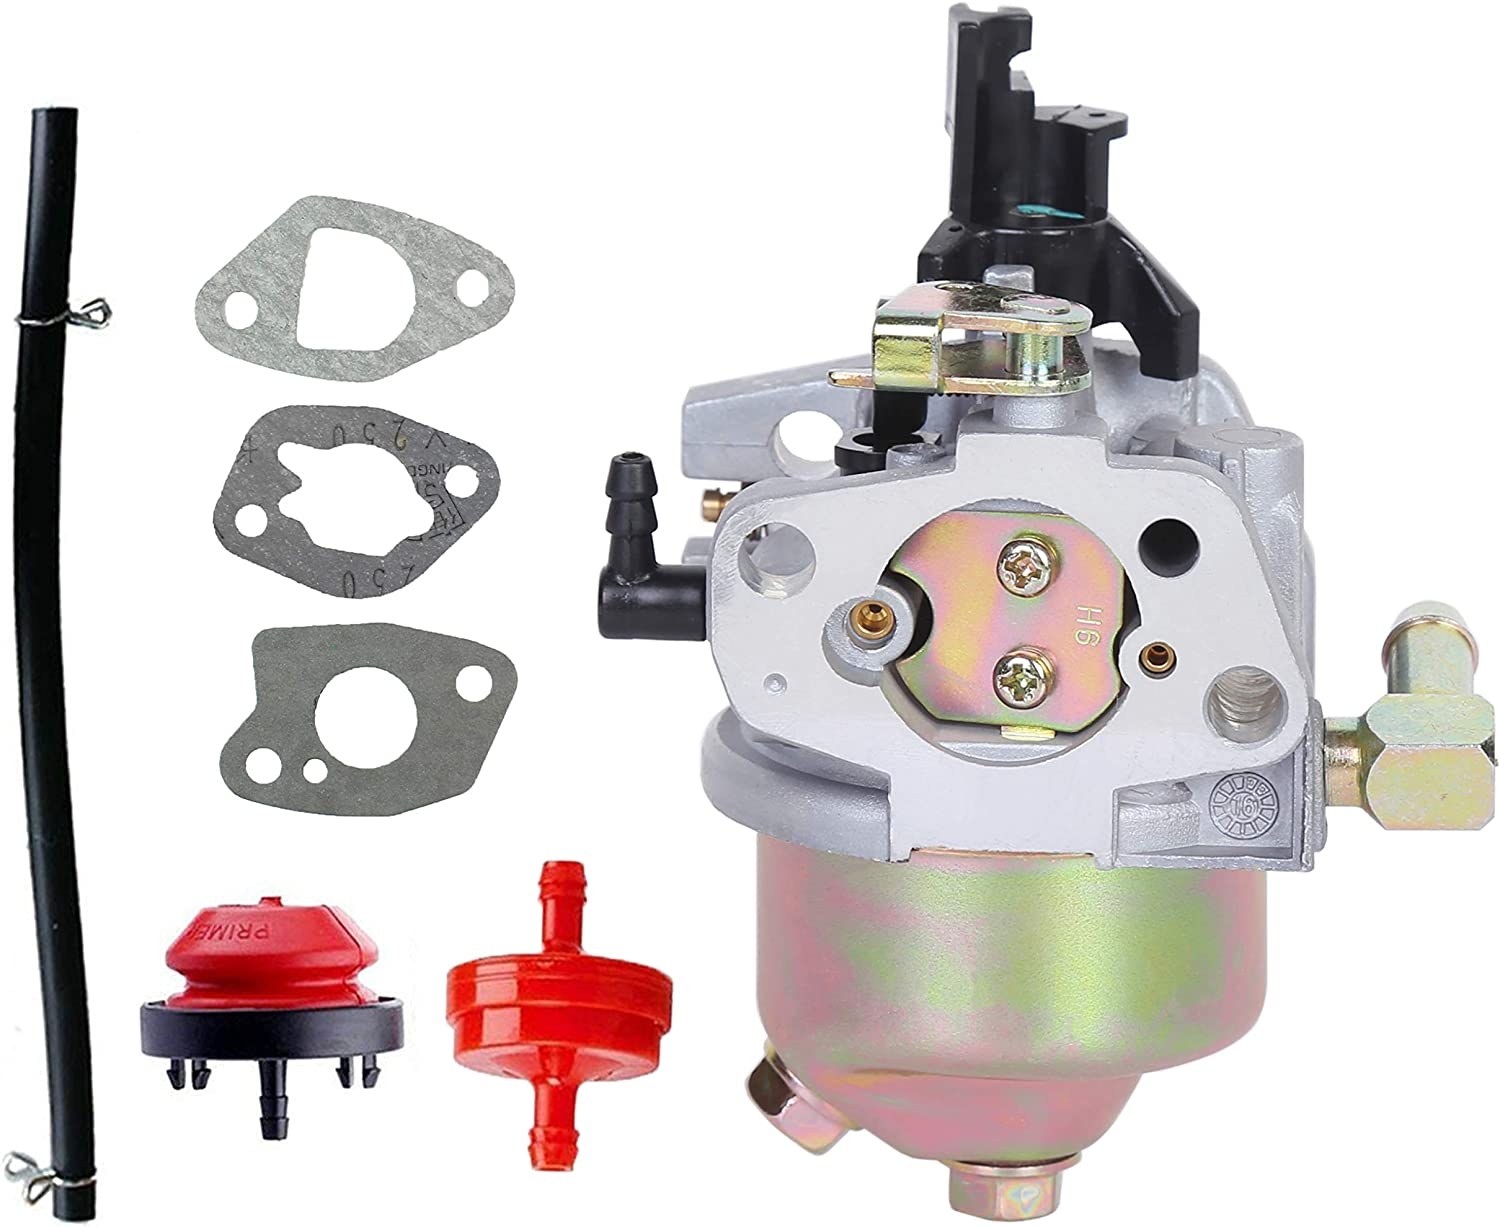 Pro Chaser 247.889571 Carburetor Replaces Craftsman 247.889701 247.886910 247.887200 247.889571 247.88955 247.881720 Snow Blower Fits MTD 270-QU 952Z265-SUA ZS365-SUA Engine Huayi 170SA 170SB Carb